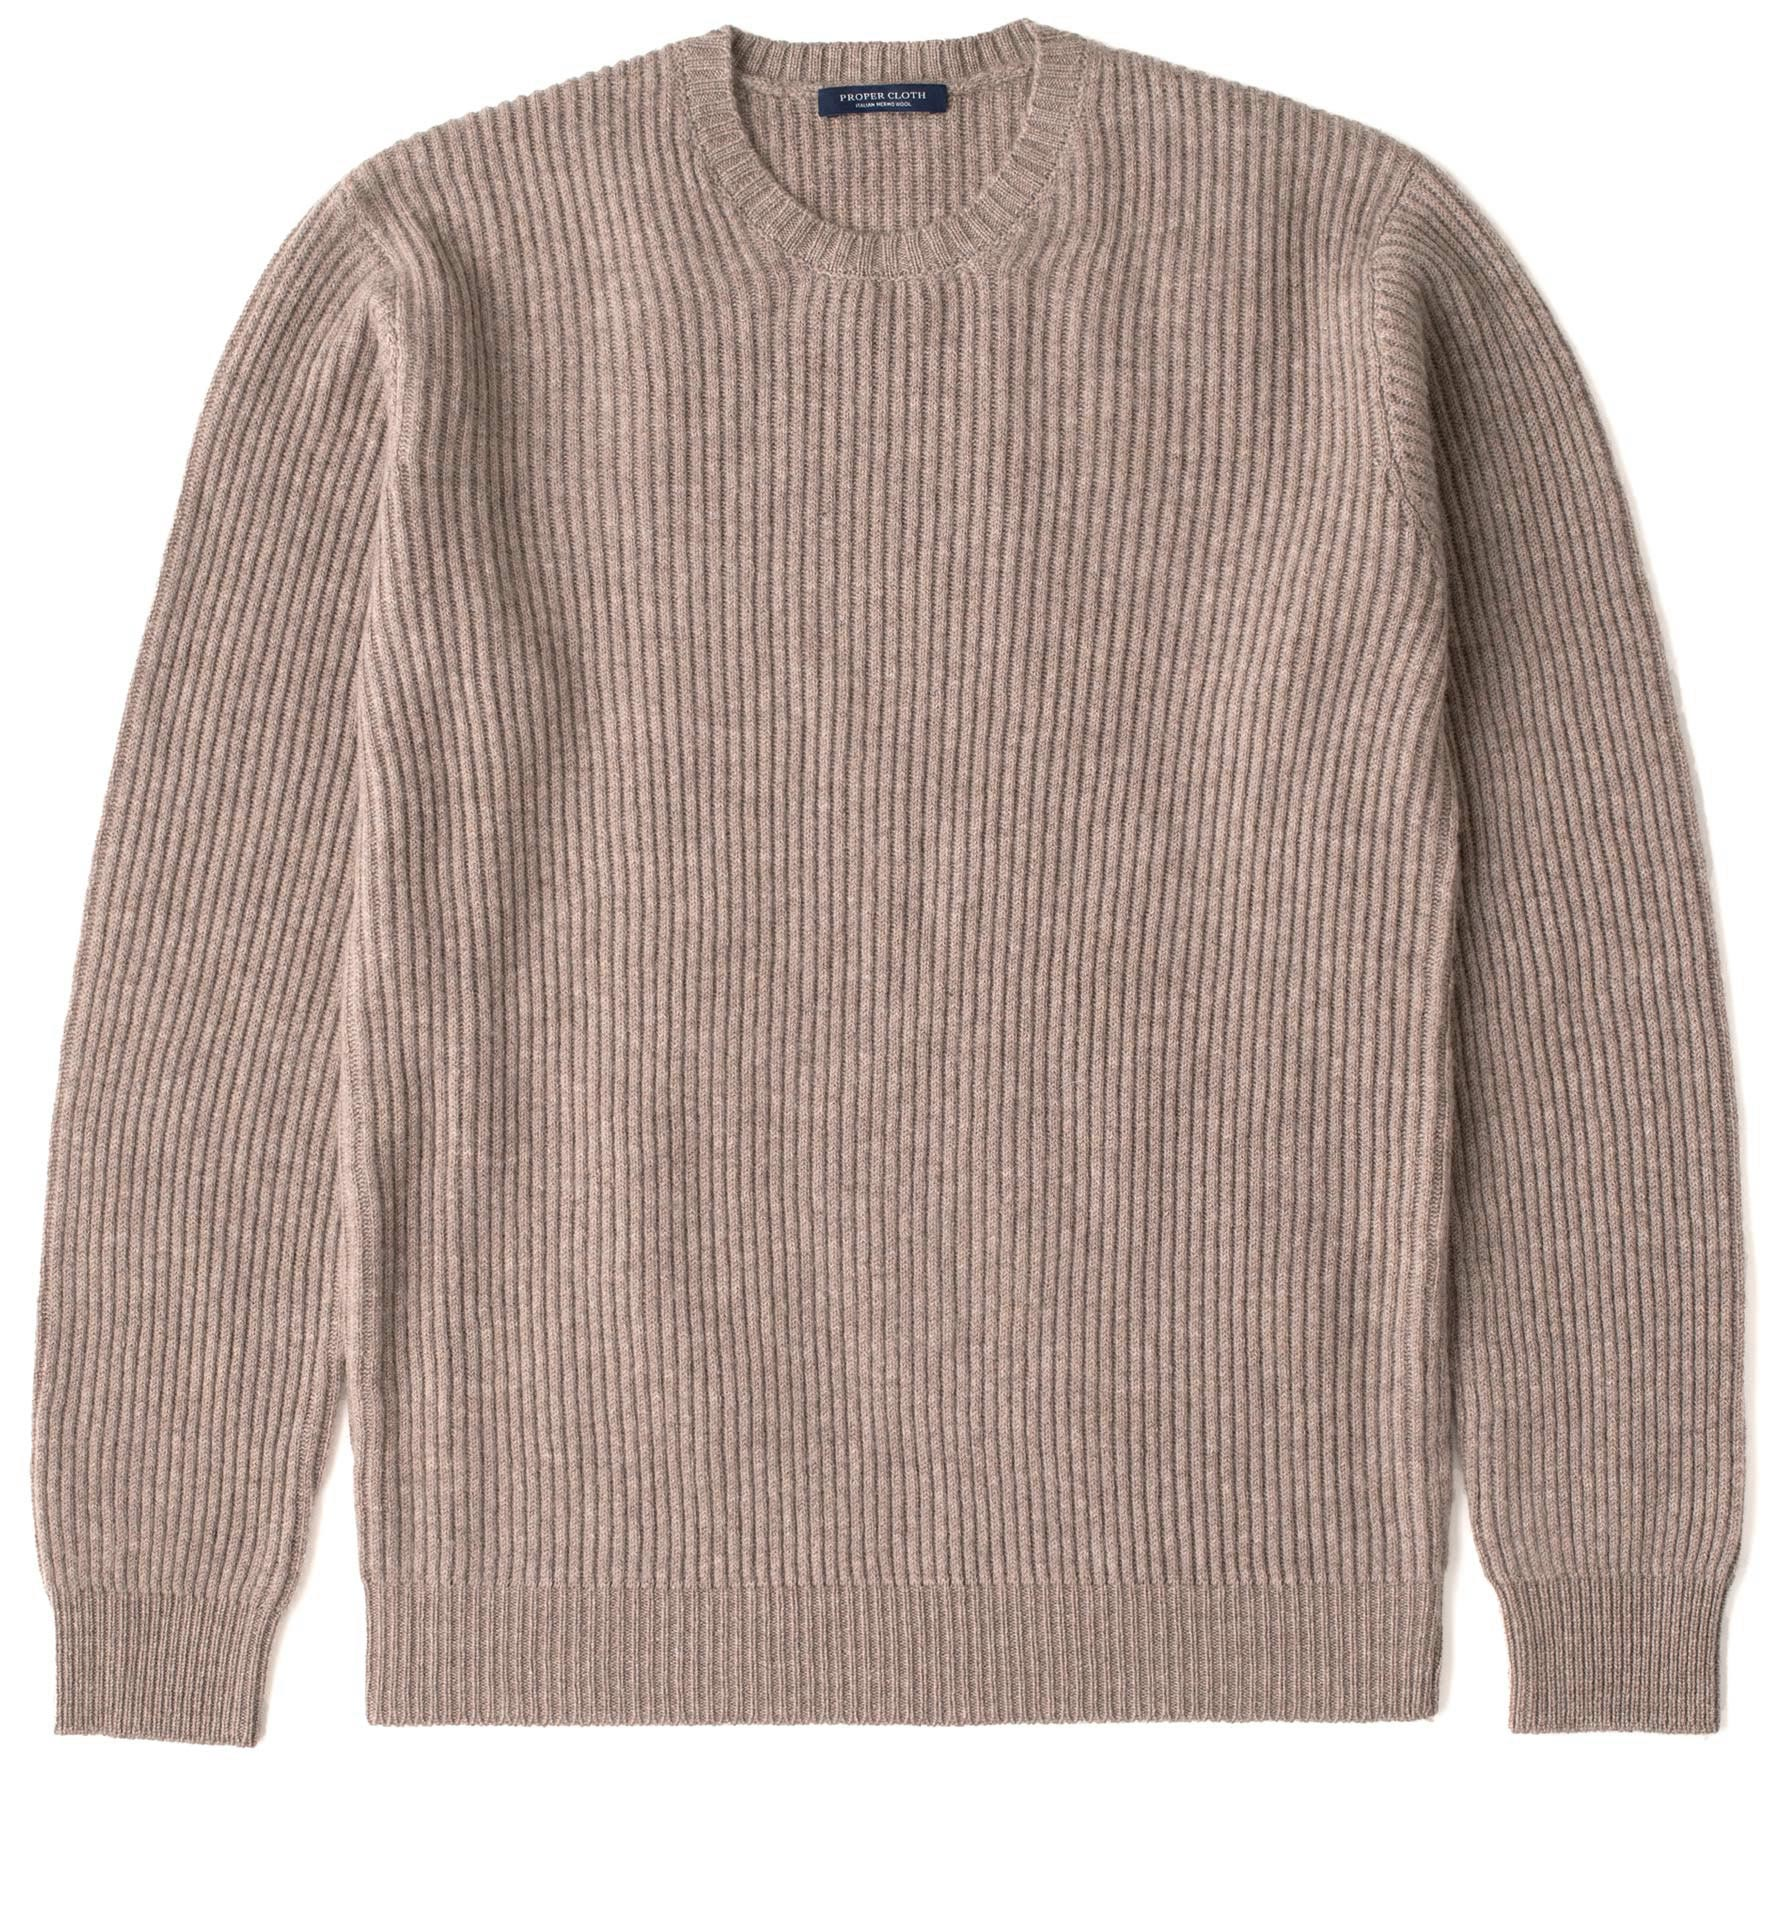 Taupe Ribbed Wool and Cashmere Sweater by Proper Cloth